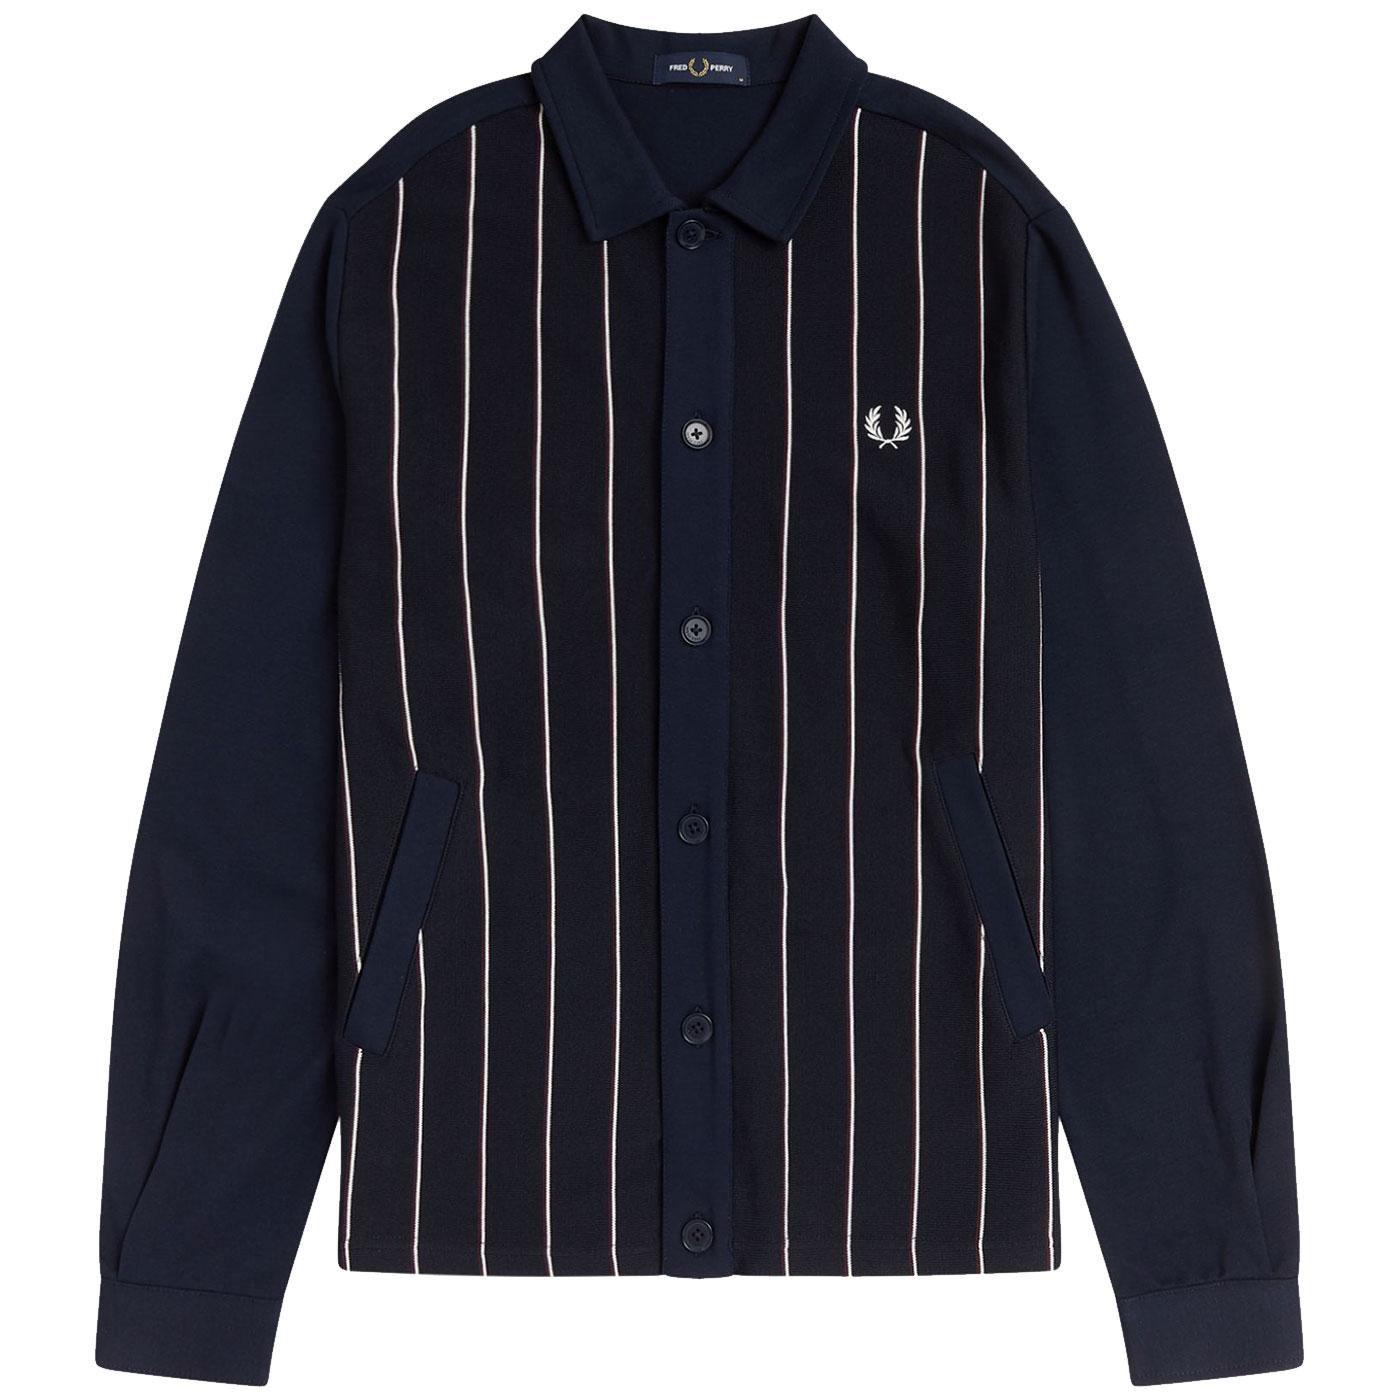 FRED PERRY Mod Knitted Fine Stripe Track Jacket